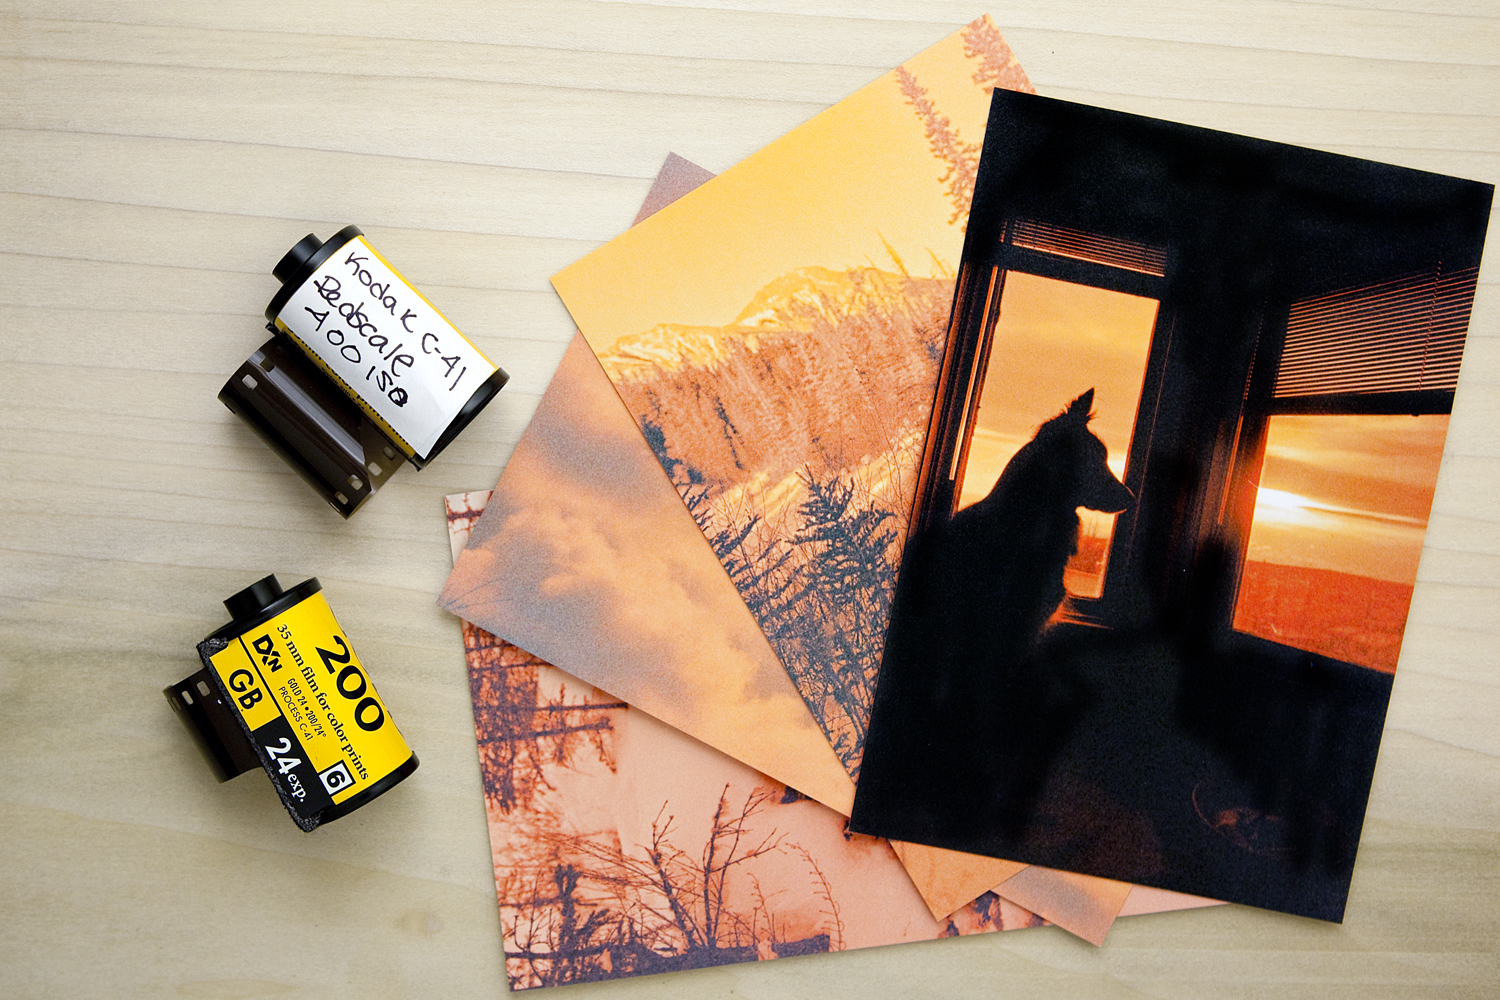 How to Make and Use Redscale Film